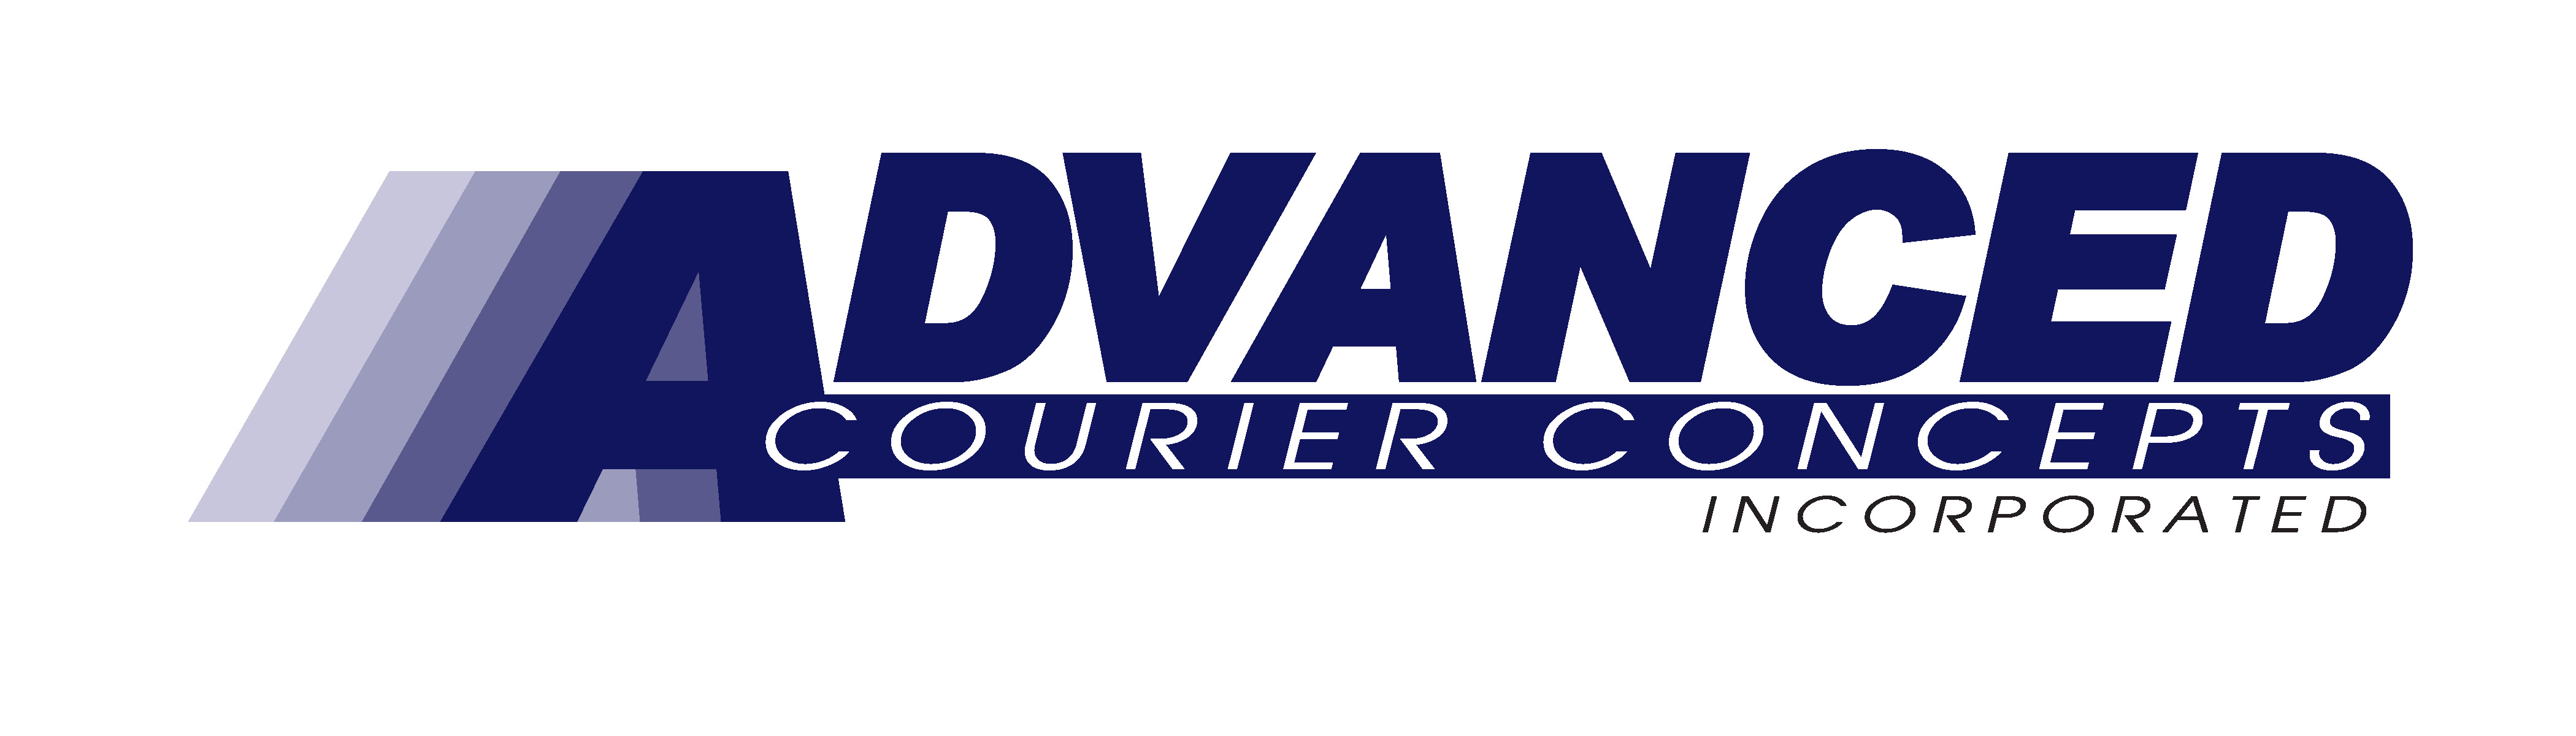 Advanced Courier Concepts, Inc.